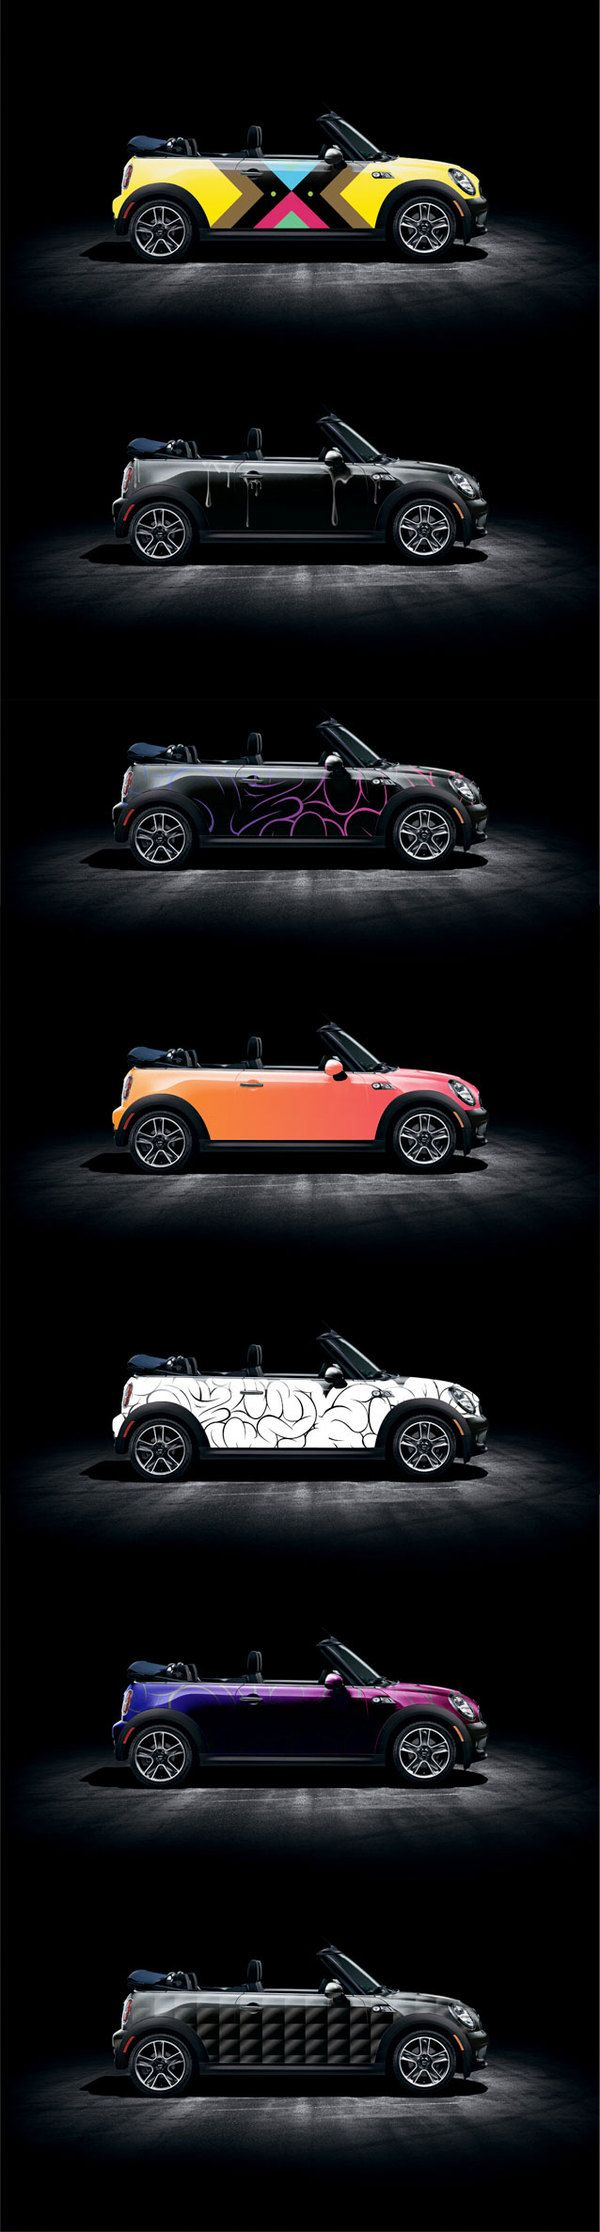 Cabriolet Mini Cooper modern body design - App for Mini Cooper Warning Lights available in App Store http://Carwarninglight.com